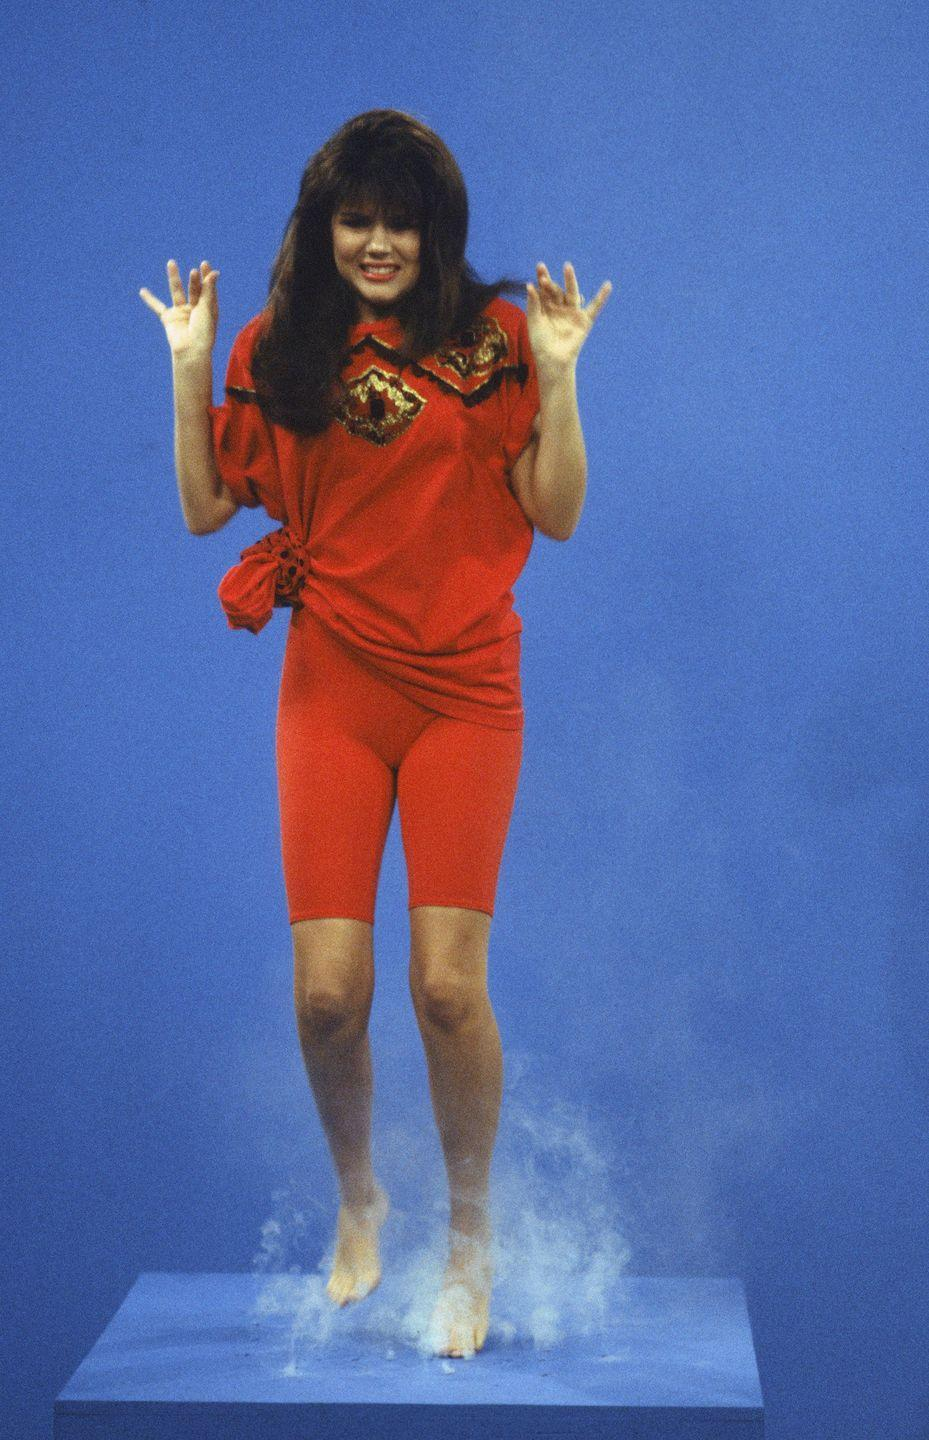 <p>Tiffani Amber Thiessen wears red bicycle shorts, while filming <em>Saved By the Bell</em>. Thiessen played the show's leading lady, Kelly Kapowski.</p>